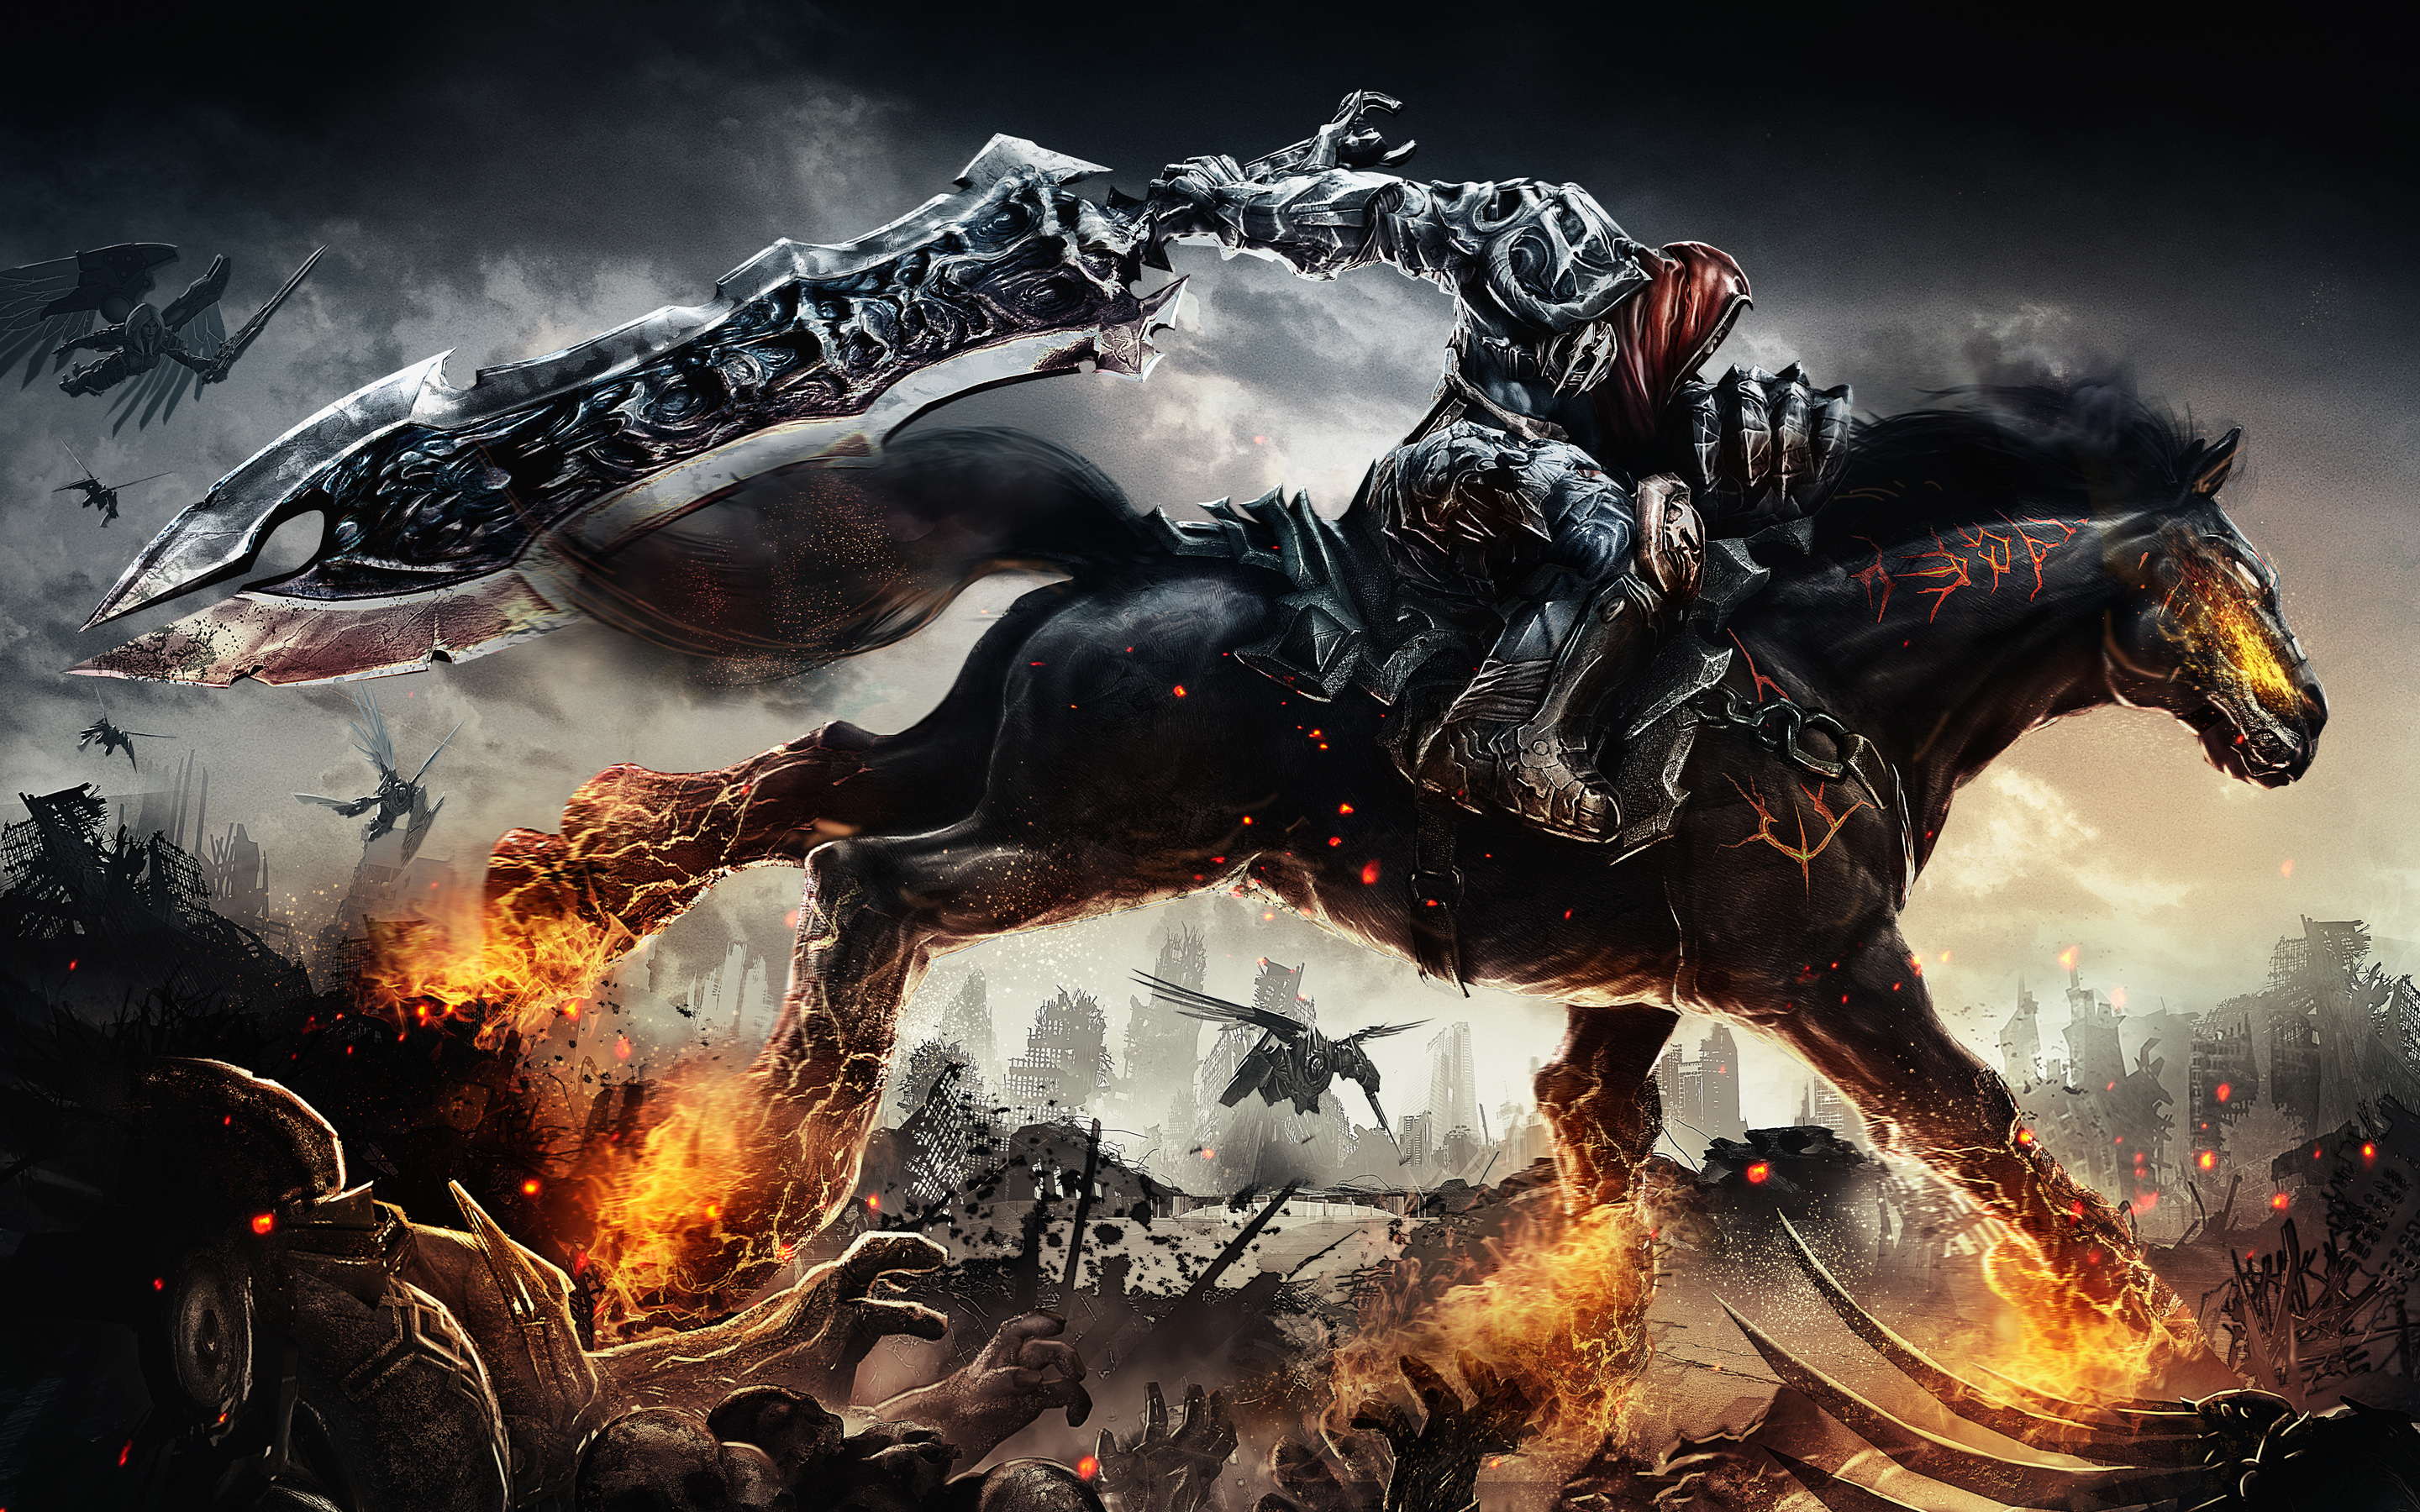 Darksiders 4k Wallpapers For Your Desktop Or Mobile Screen Free And Easy To Download